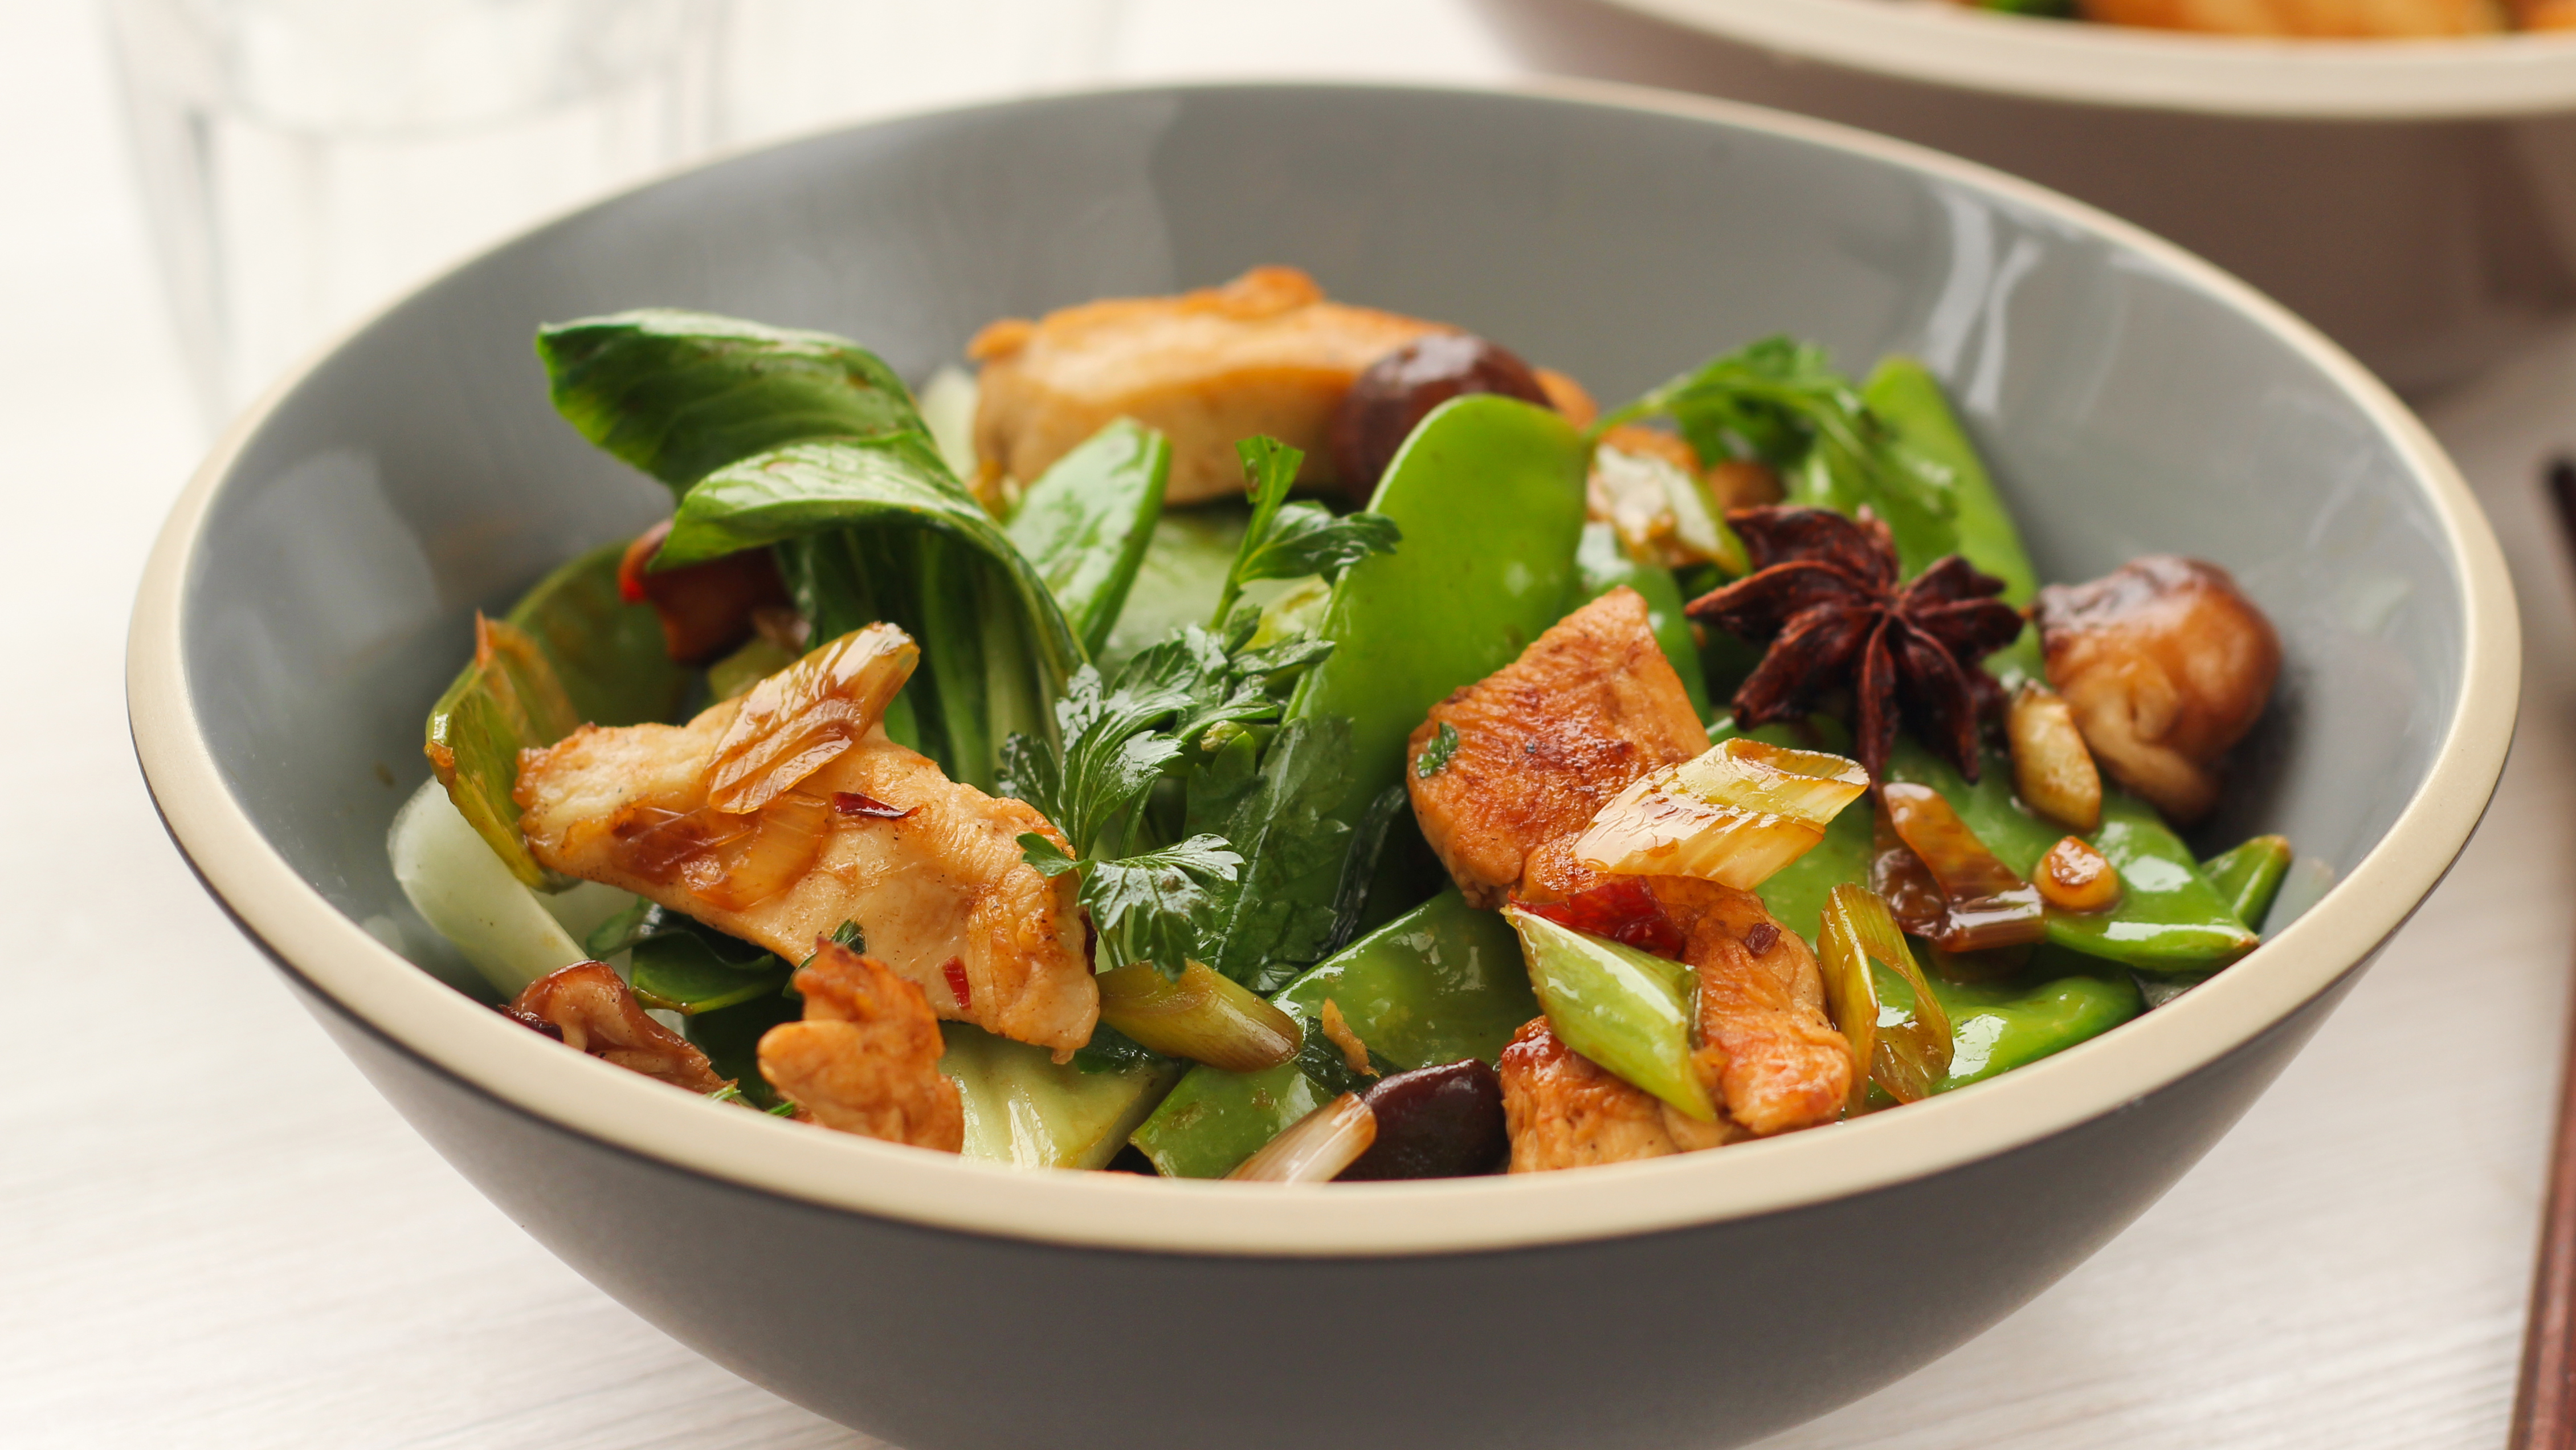 Chicken stir fried with pak choi recipe bbc food forumfinder Gallery